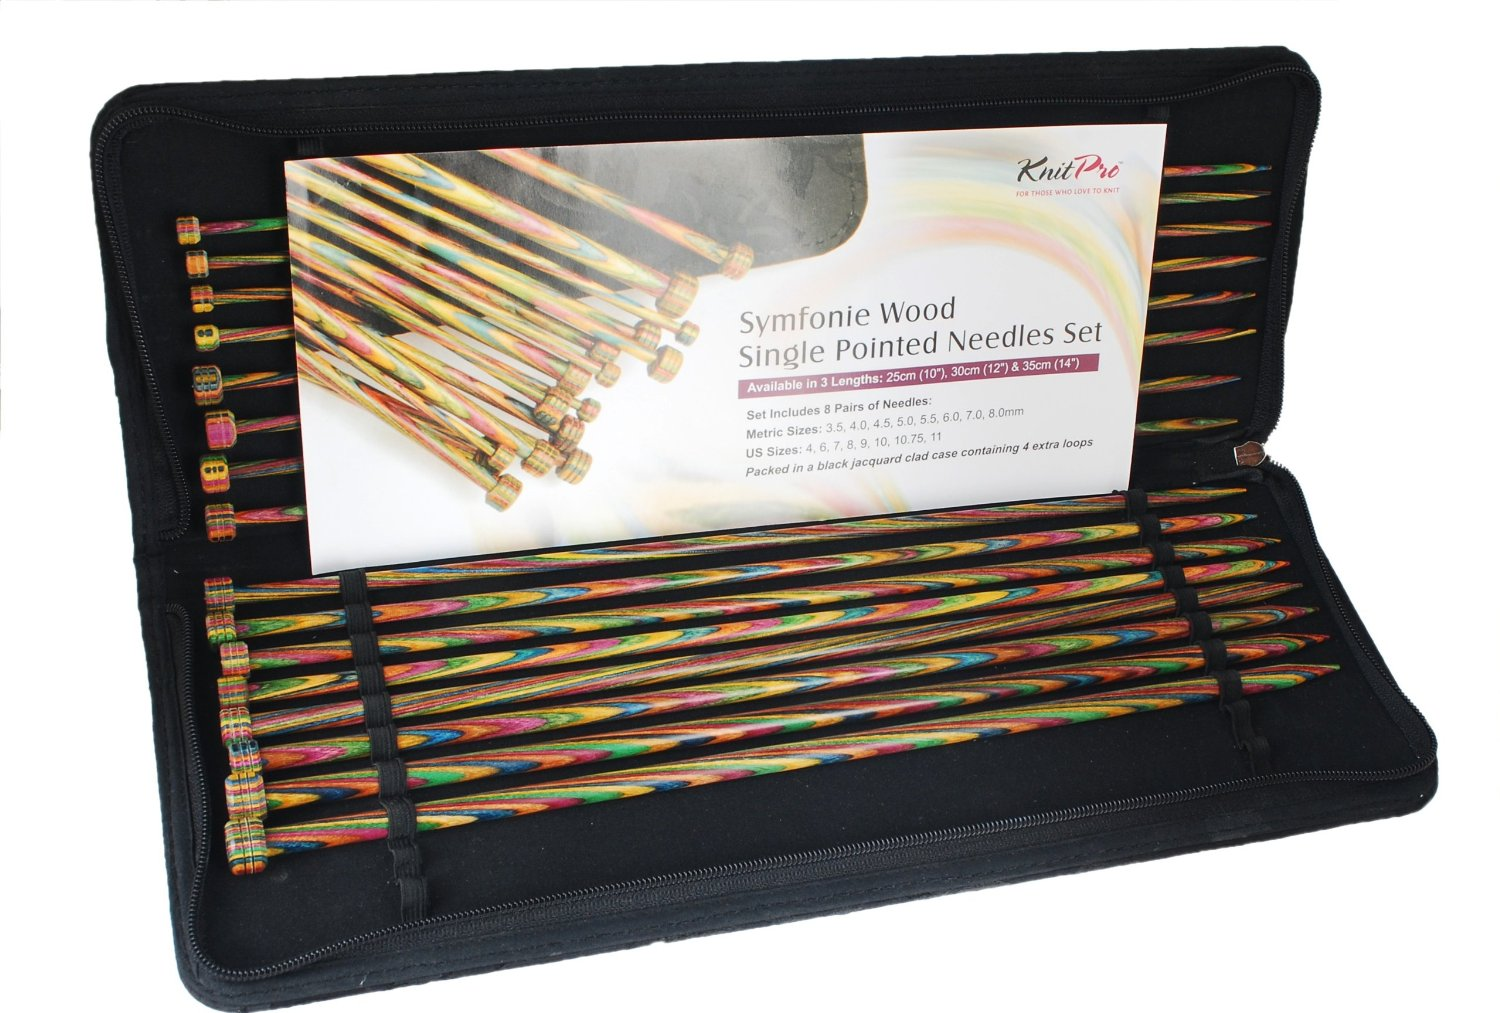 KnitPro Symfonie Wood Single Pointed Needles Set - 35cm long